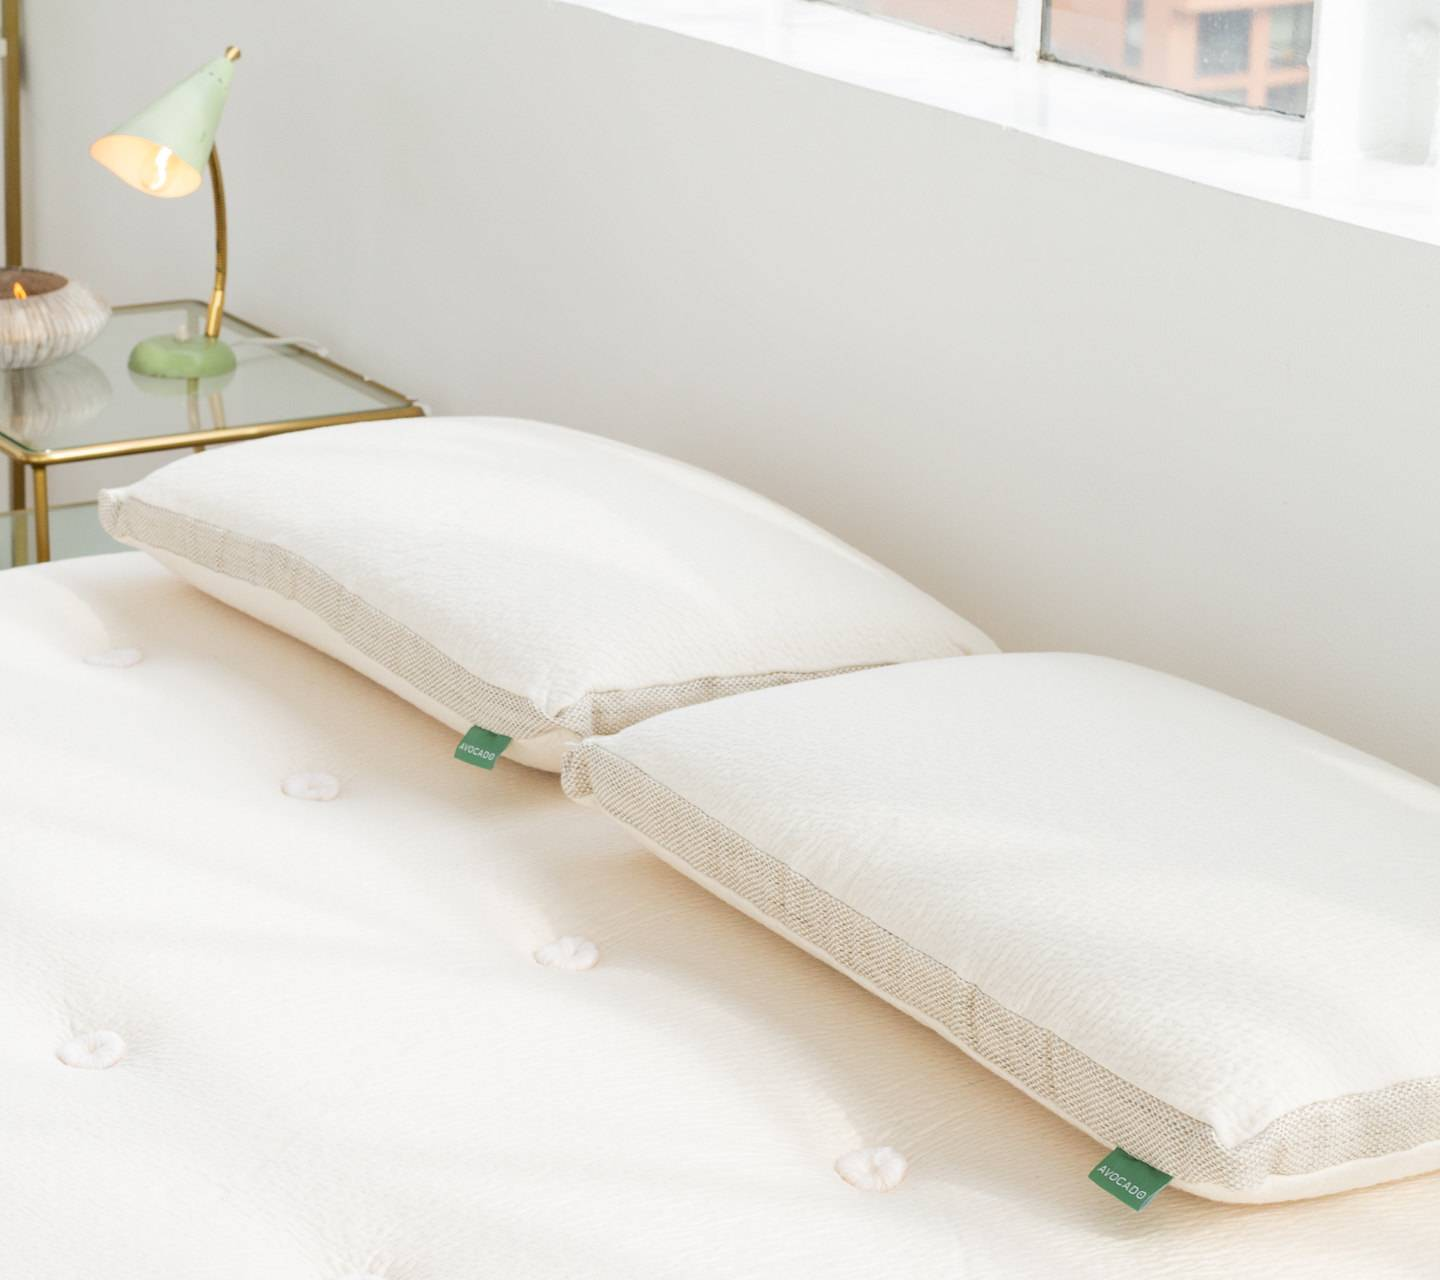 avocado molded latex pillow review